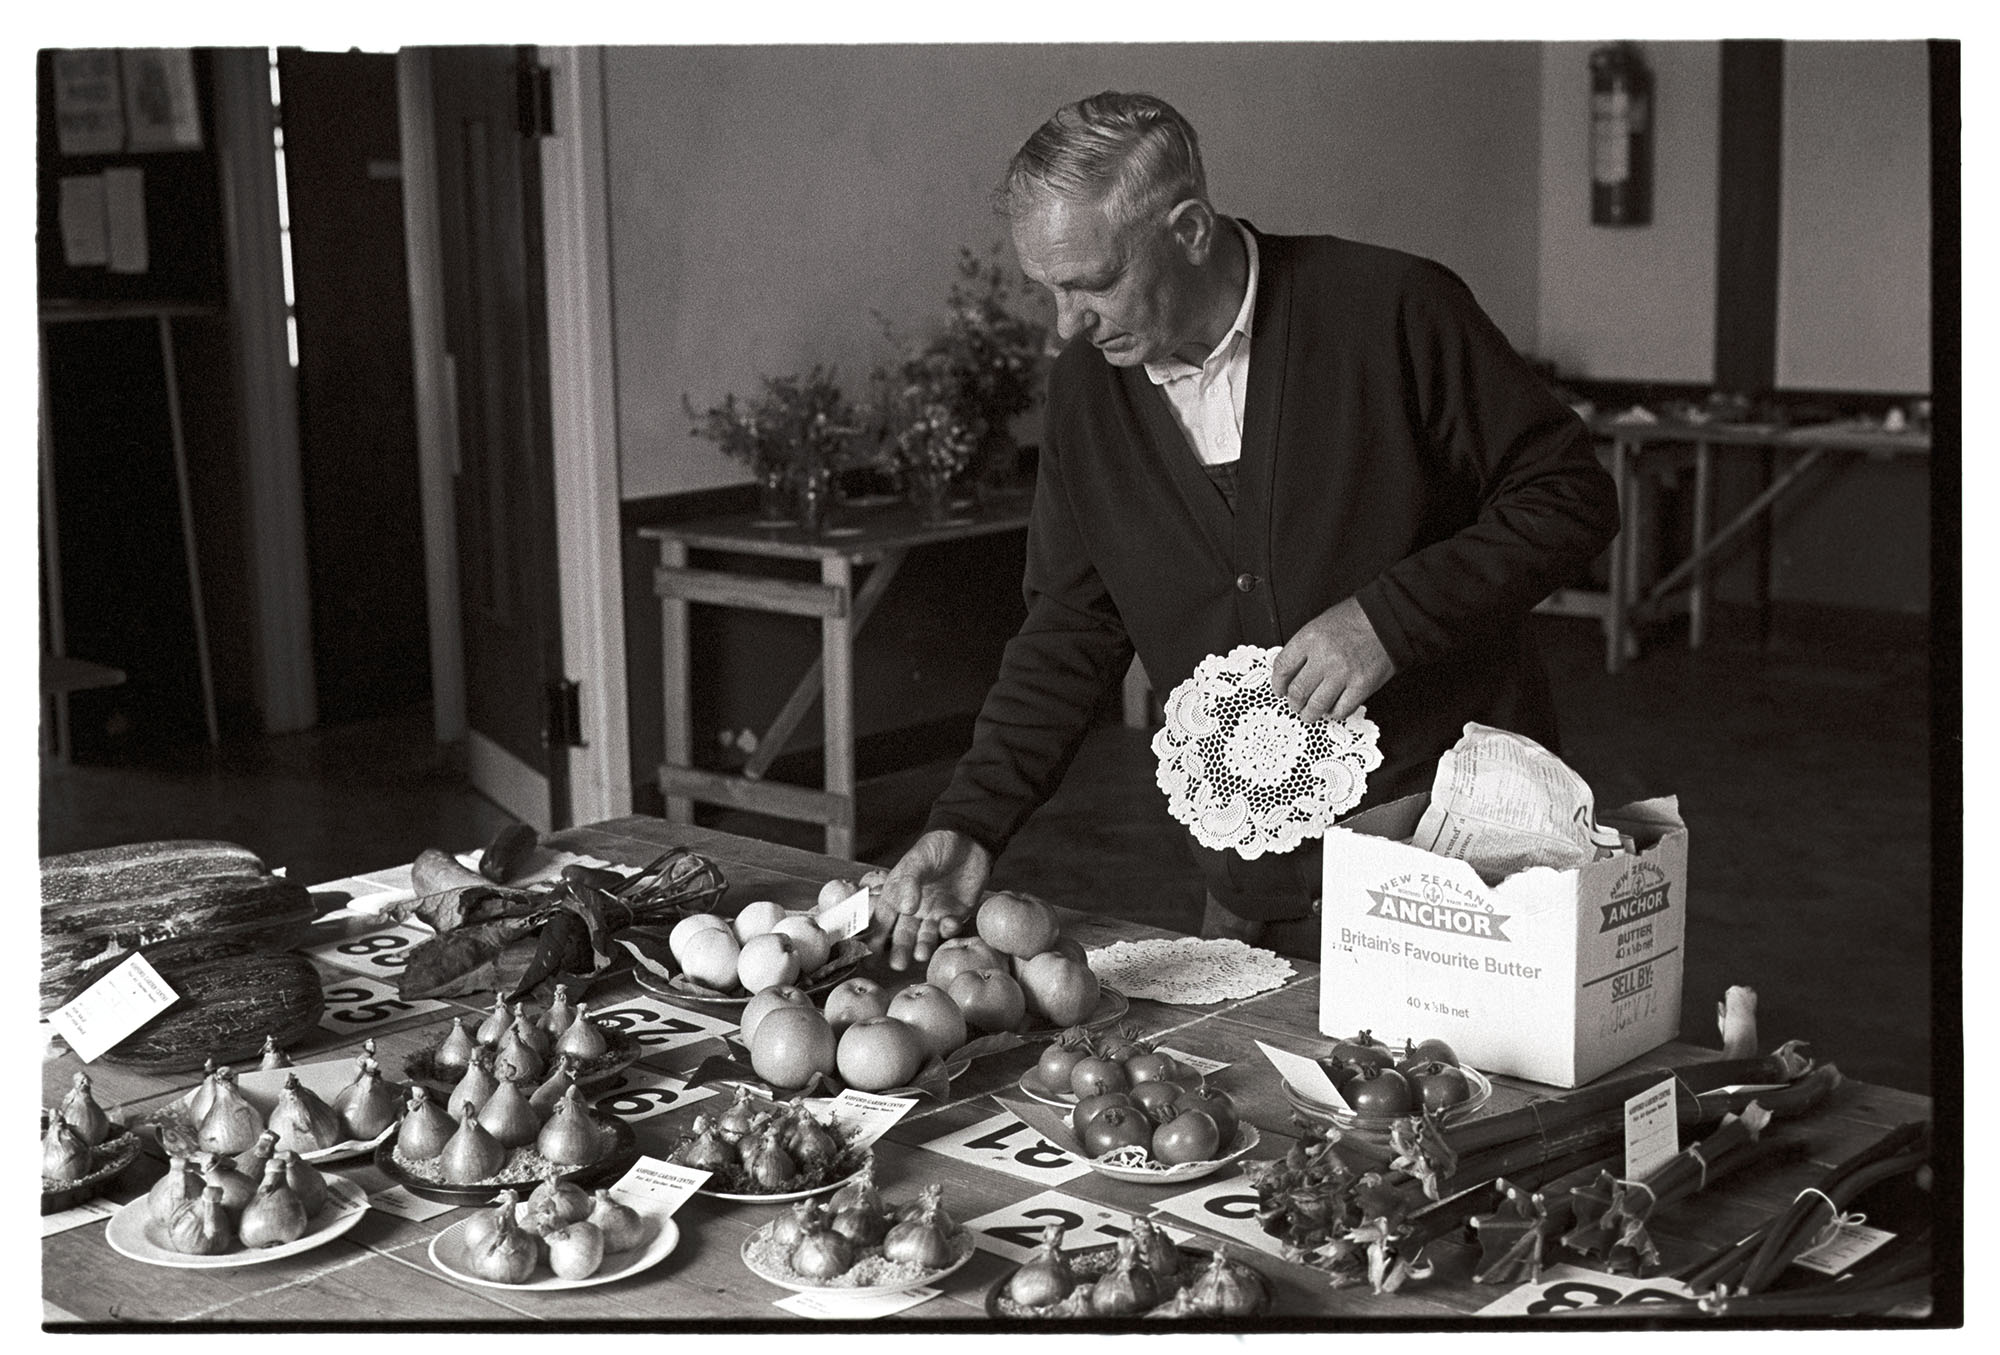 Man laying out produce at Flower Show in village Hall. Fruit, vegetables.<br /> [Philip George holding a doily and laying out produce at the Flower Show in Dolton Village Hall. Onions, apples, marrows and rhubarb are visible on the table.]